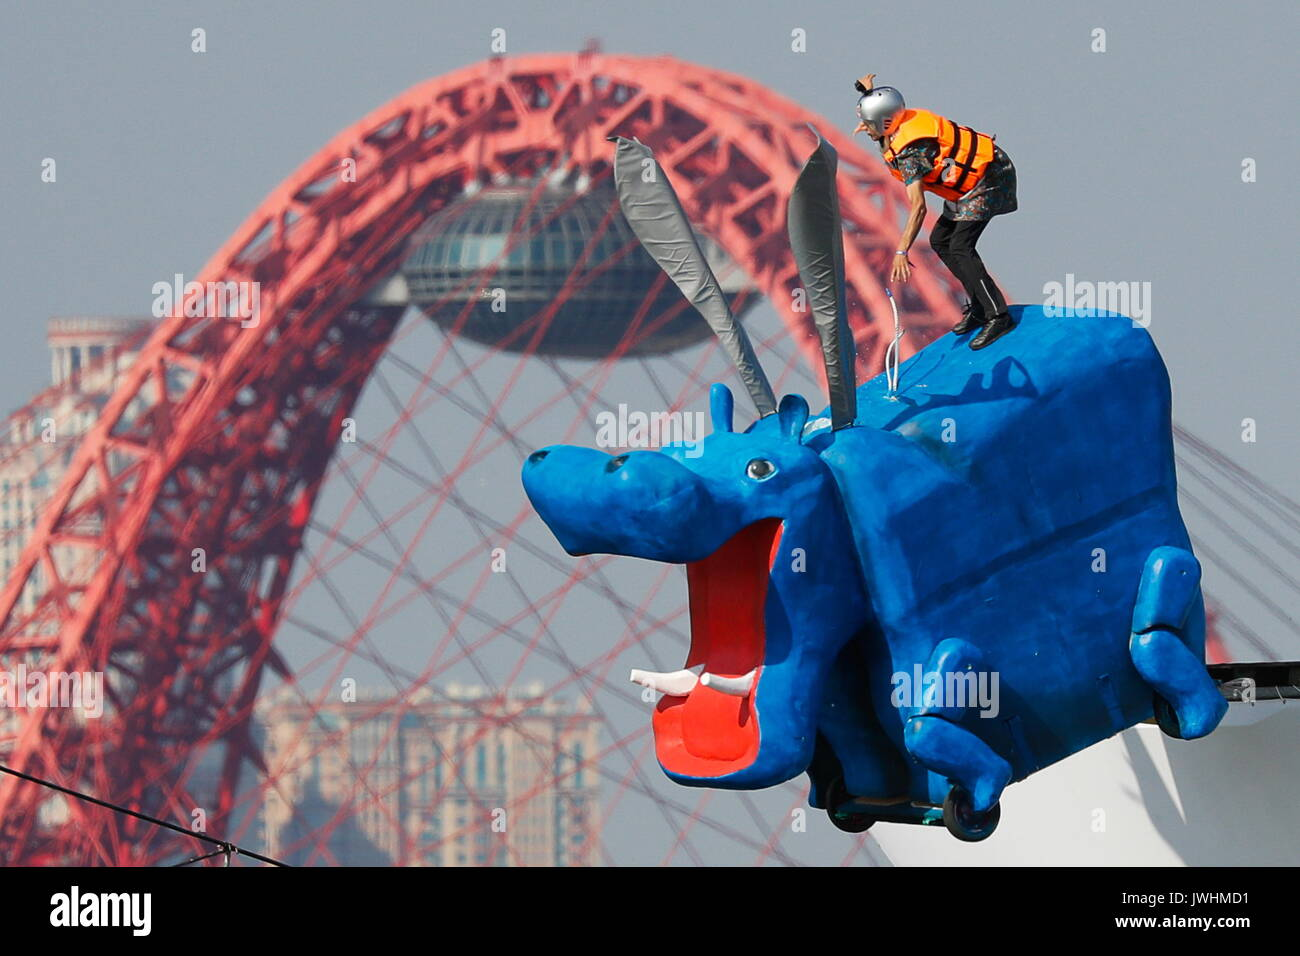 Moscow, Russia. 13th Aug, 2017. A participant jumps into the water in his homemade flying machine during the 2017 - Stock Image